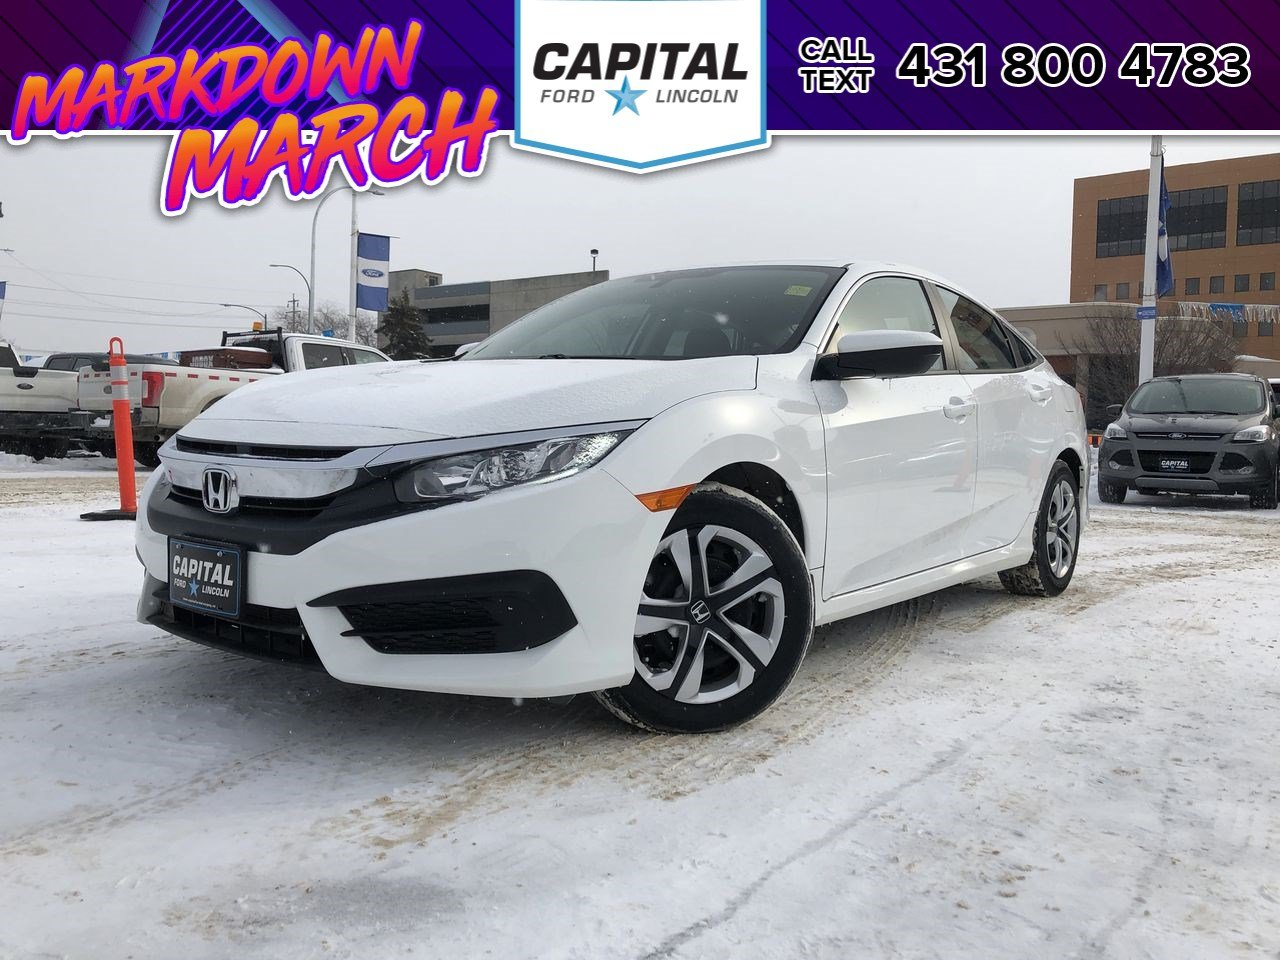 Pre-Owned 2018 Honda Civic Sedan LX HEATED SEATS CAR PLAY BACKUP CAM